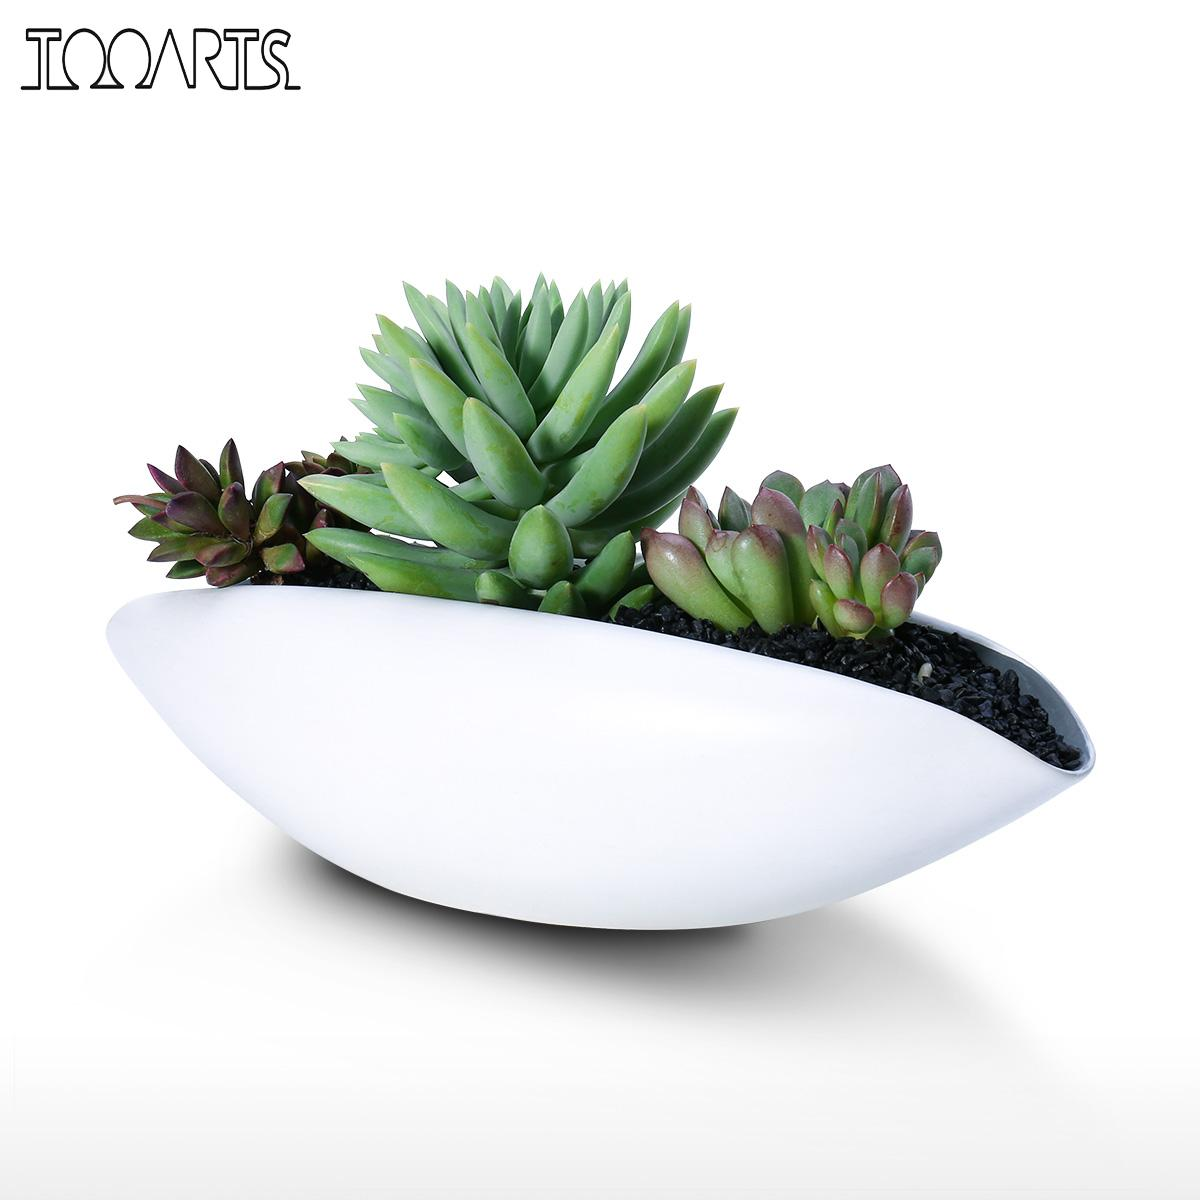 Tooarts Ceramic Vase Succulent Planter Pot Decorative Centerpiece Plant For Home Or Wedding Modern Bowl Decor Flowerpot In Flower Pots Planters From